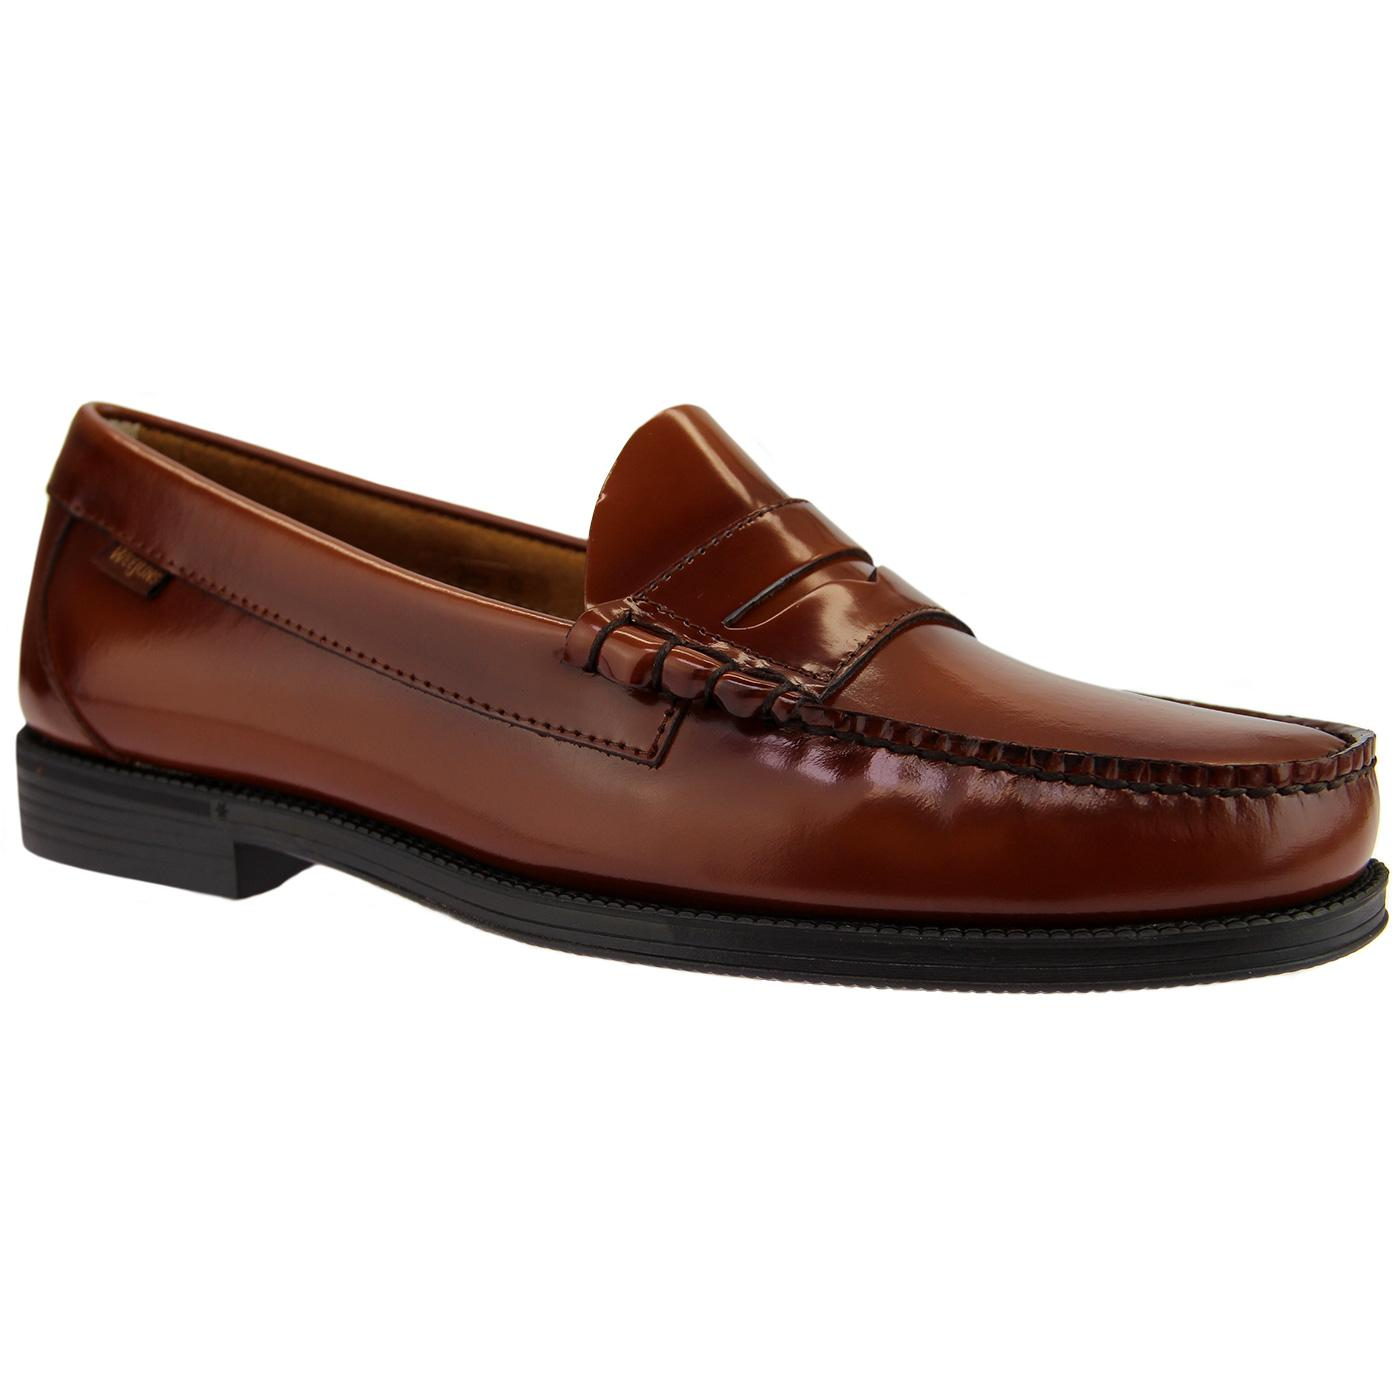 Larson Easy Weejun Penny Loafer in Tan